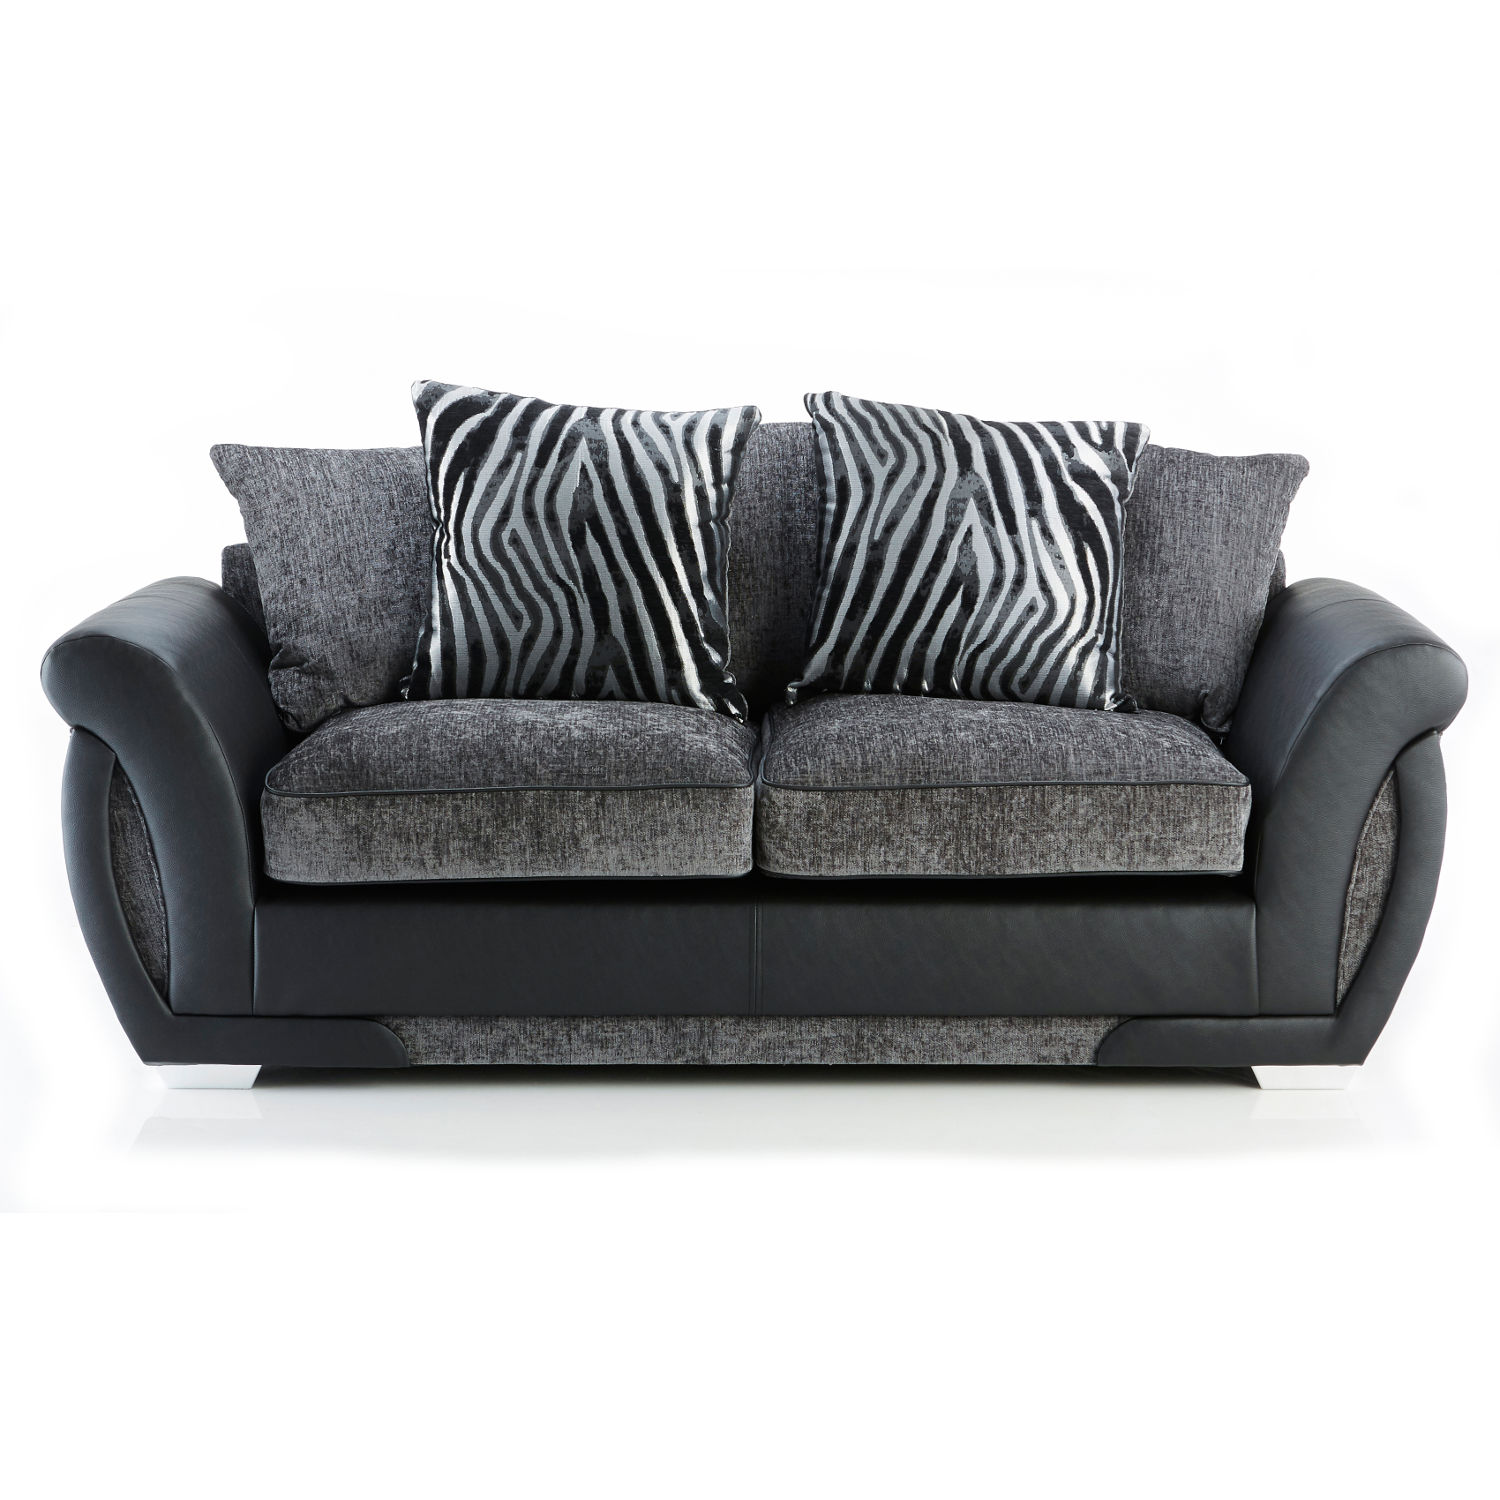 Mulberry 3 Seater Sofa